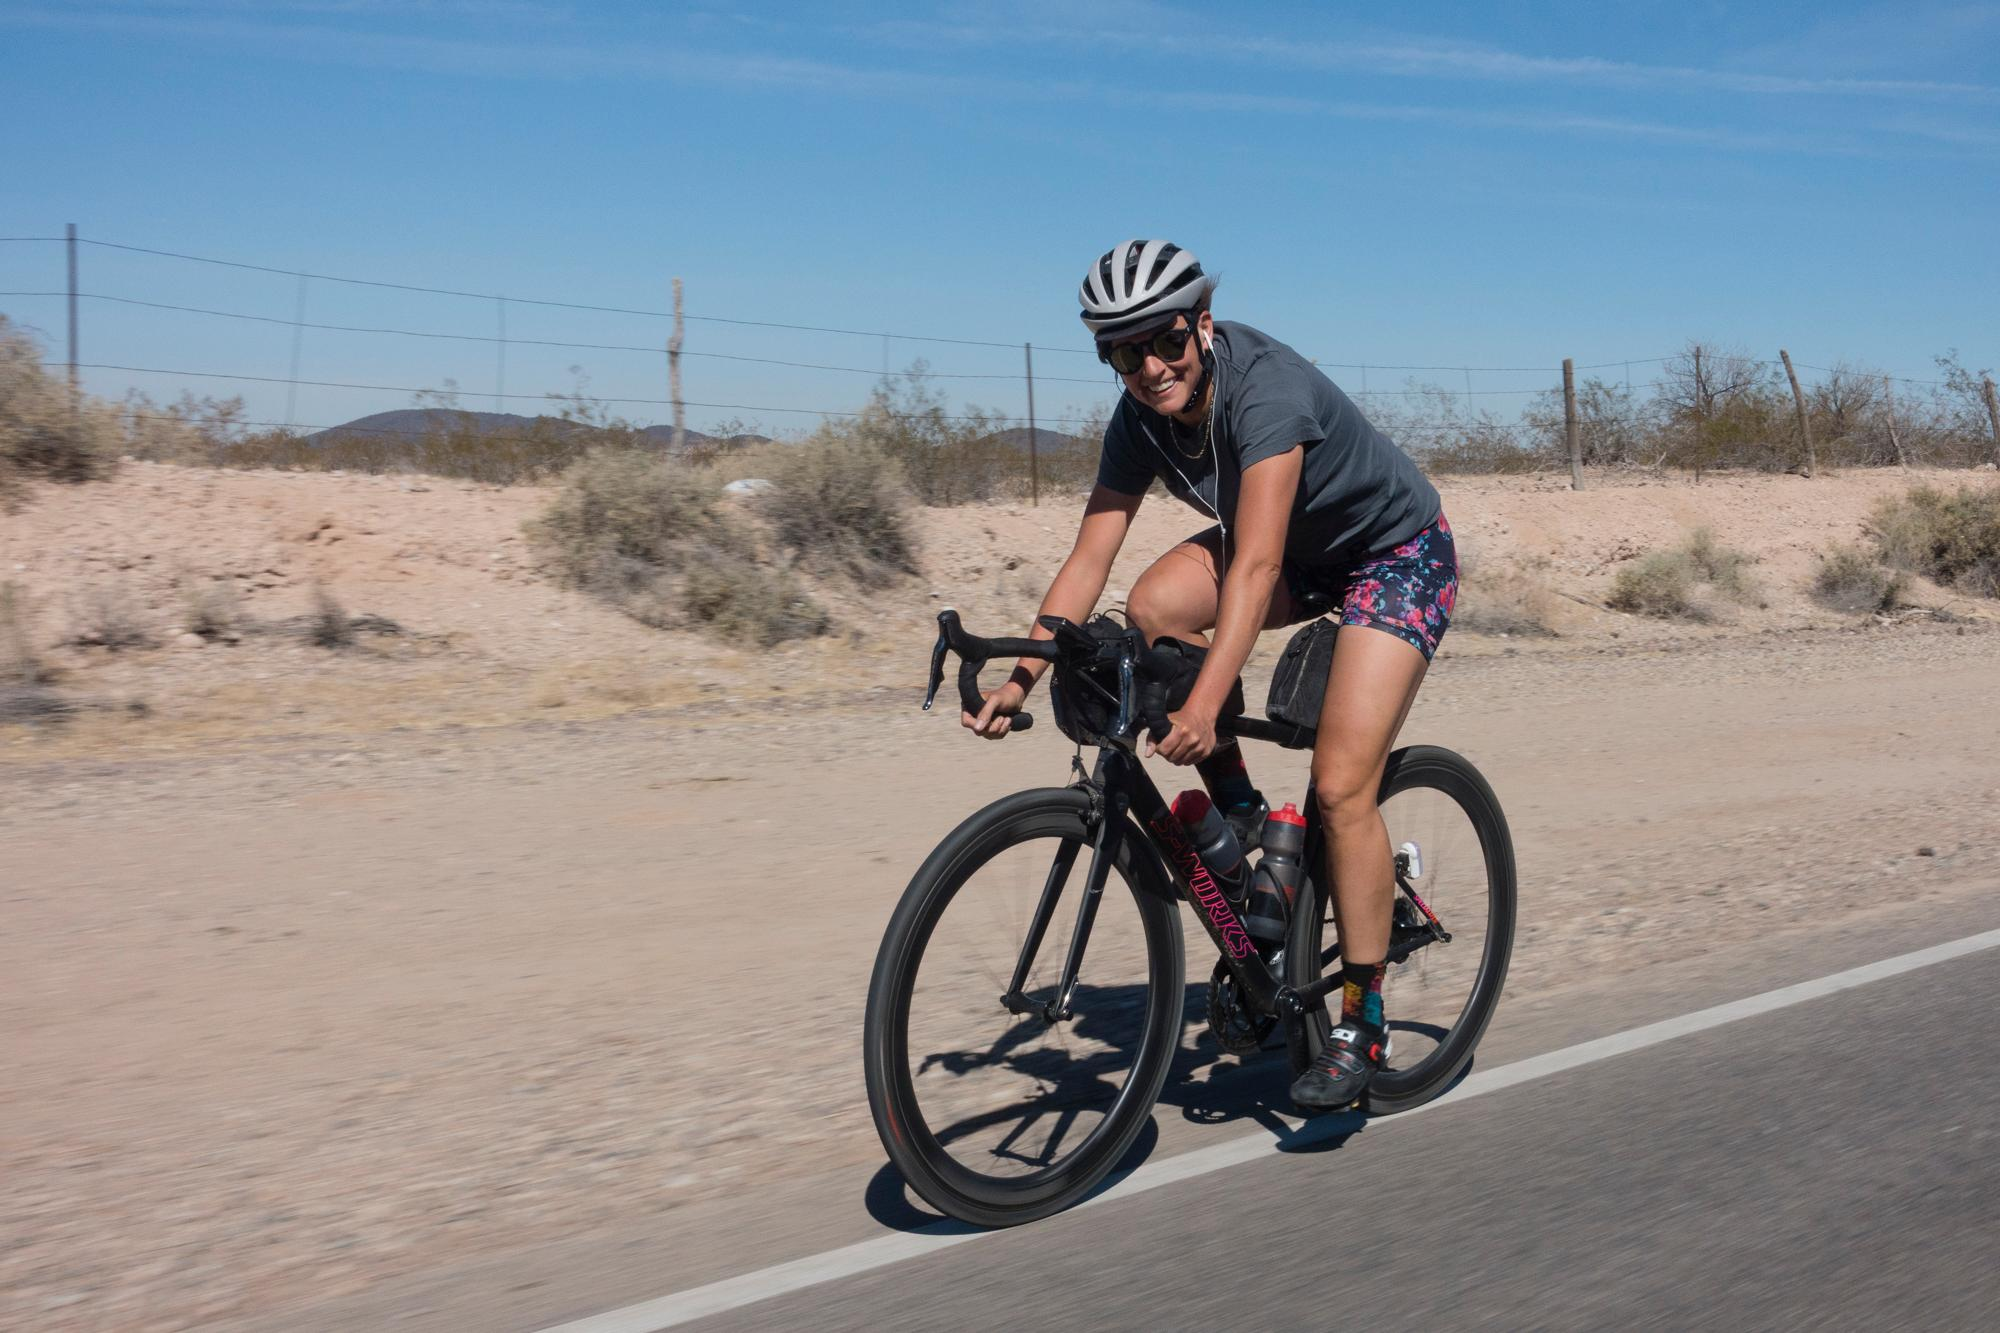 Lael in her element, racking up the miles. (Trevor Raab)